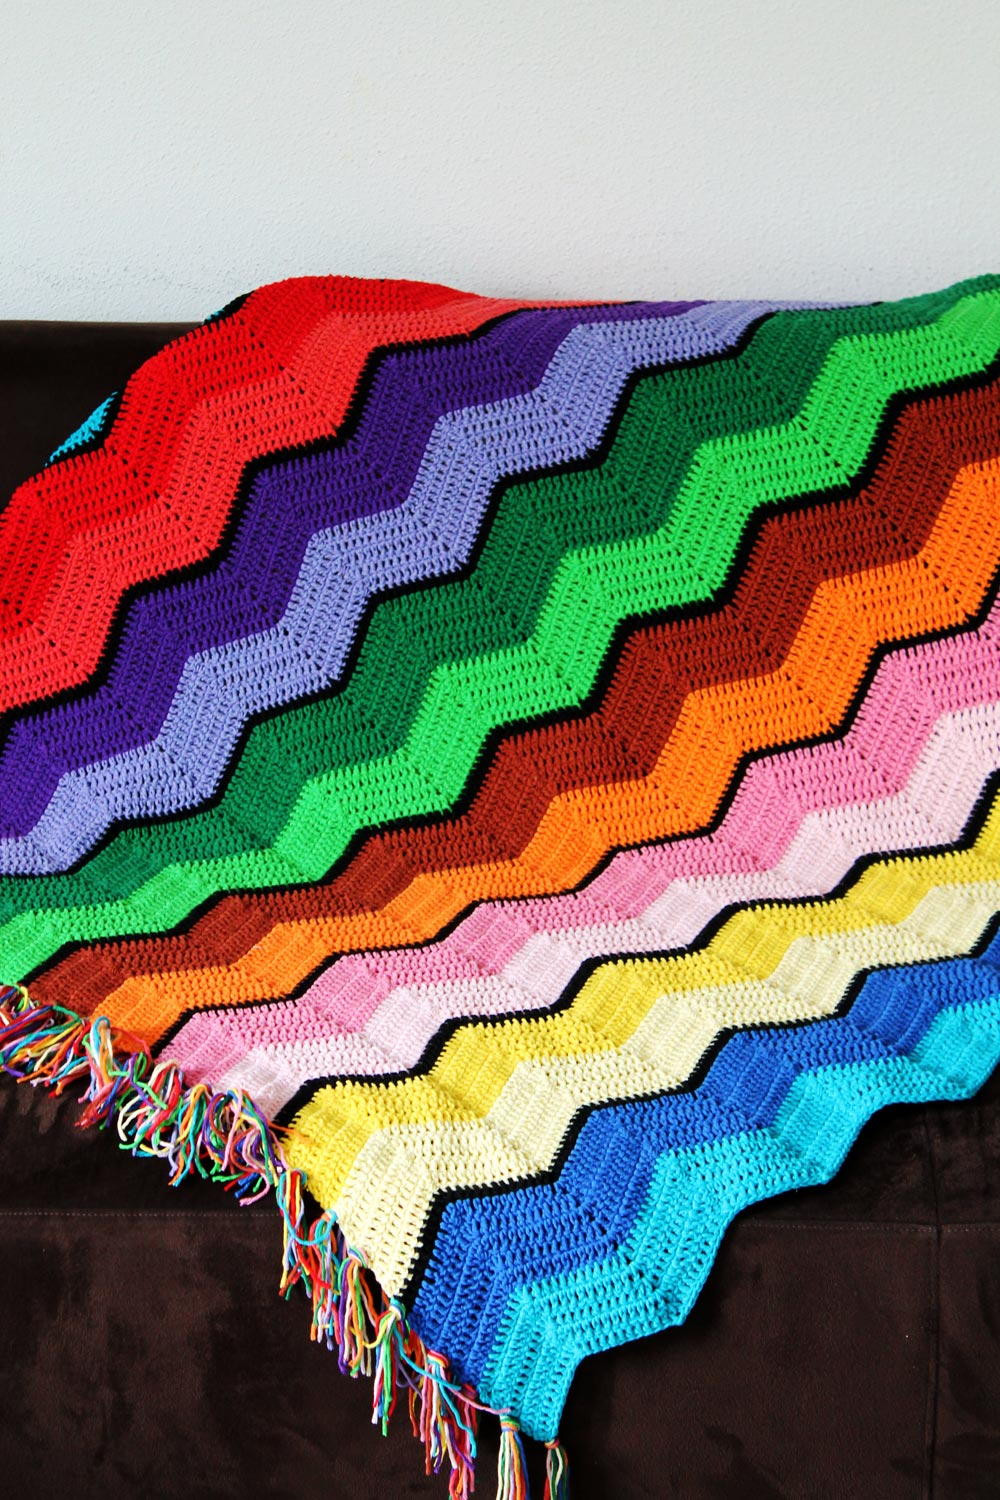 Free Crochet Throw Patterns Lovely 51 Free Crochet Blanket Patterns for Beginners Of Contemporary 44 Pics Free Crochet Throw Patterns